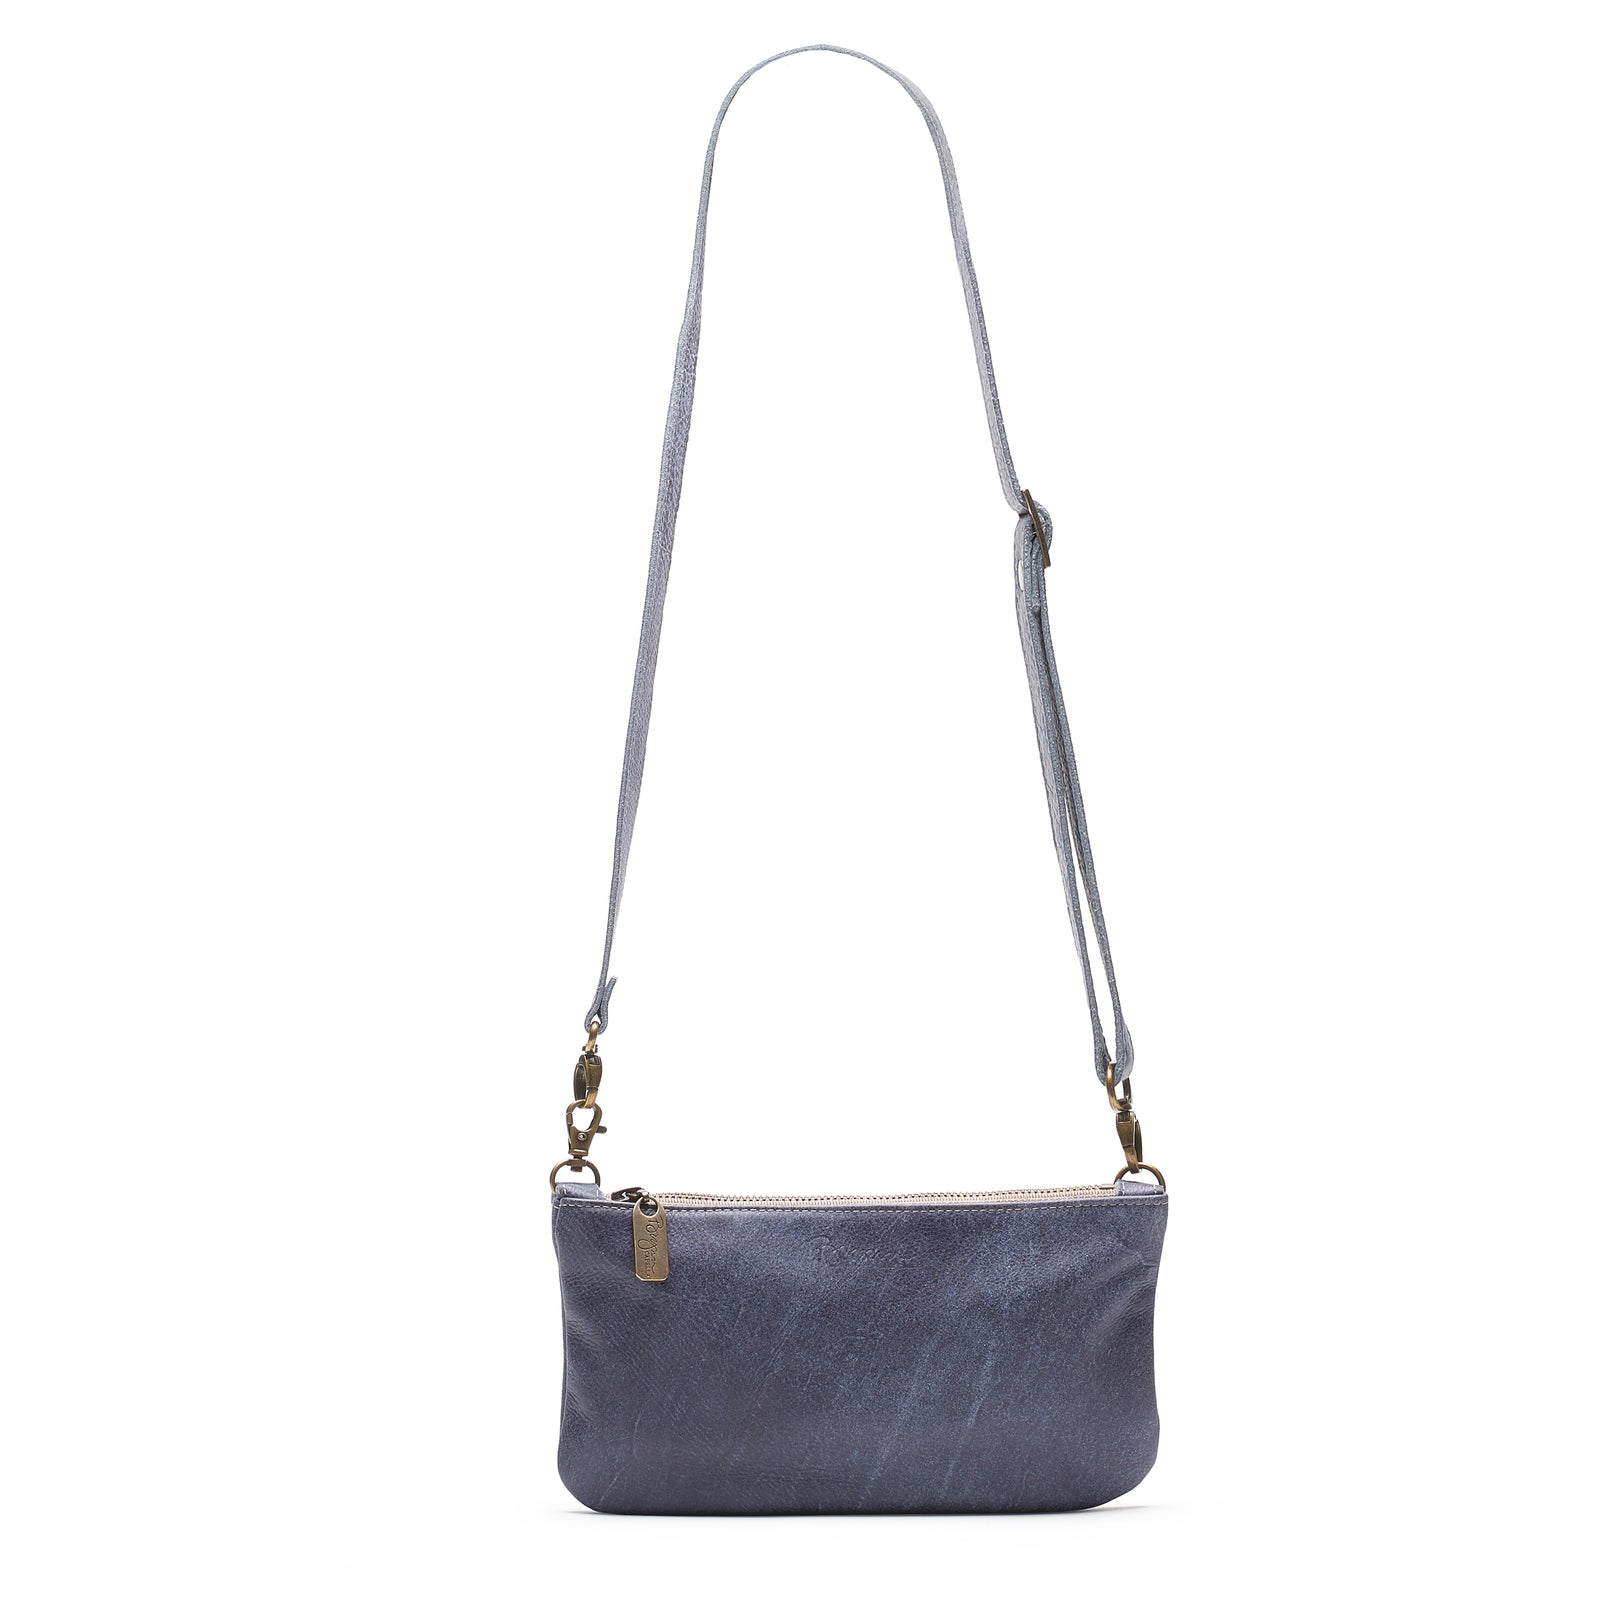 Cher Belt Bag / Crossbody - Bluebell - Brynn Capella, Mini Crossbody